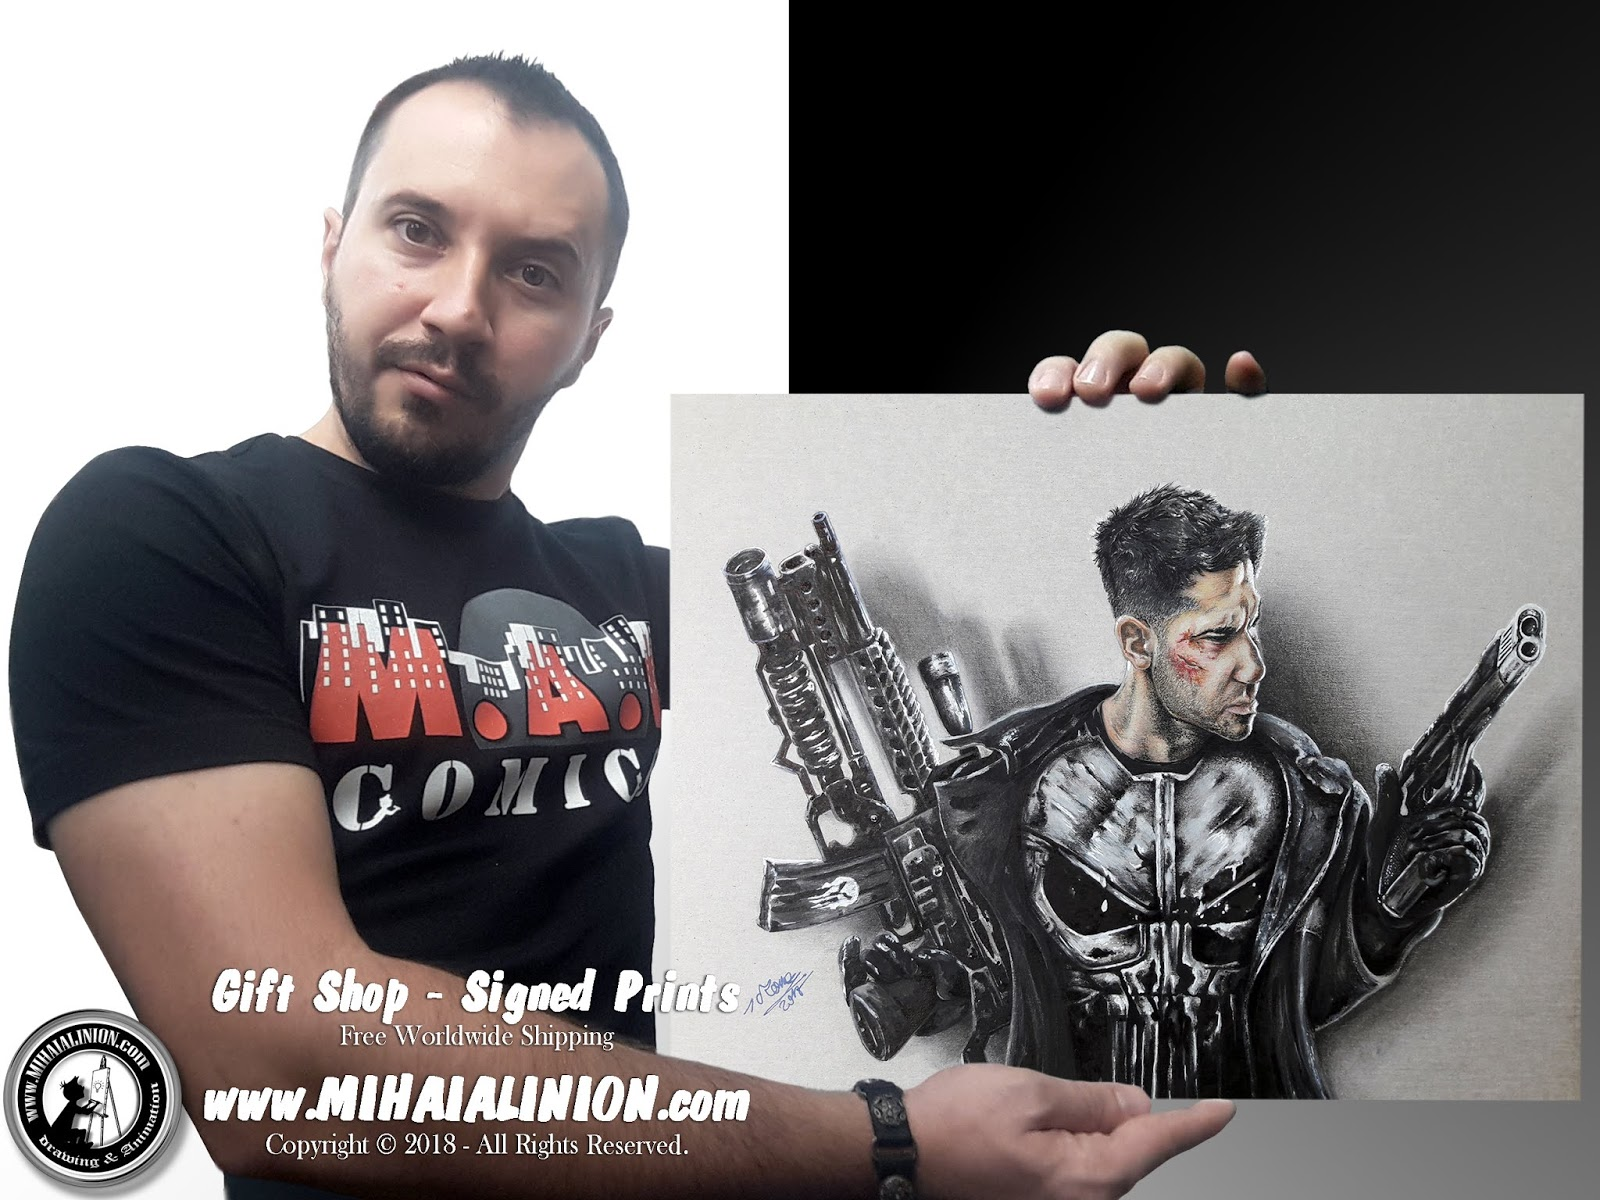 Drawing Punisher, Drawing The Punisher, Drawing Frank Castle, Frank Castiglione, Drawing Jon Bernthal, Punisher The Movie, Netflix Punisher, Marvel`s Punisher, Punisher ComicBook, How to draw The Punisher, Punisher pencil drawing, Stan Lee, Jim Lee, Supervillain, Marvel Heroes, John Romita Sr, Ross Andru, MAI Comics, Mihai Alin Ion, art by mihai alin ion, Drawing Marvel, Marvel versus DC, Marvel Comics, DC Comics, Gerry Conway, how to draw, artselfie, drawing ideas, free drawing lessons, drawing tutorial, art, dessin, disegno, dibujo, drawing Marvel heroes, drawing, illustration, painting, design, realistic 3d art, coloured pencils, www.mihaialinion.com, 2018, pencil drawing, tempera, acrilics paint, marker, gouache painting, mixed media, comics, comic book, caricature, portrait, cum sa desenezi, caricaturi mihai alin ion, caricaturi si portrete  la comanda, eveniment caricaturi, caricaturi la nunta, caricaturi la botez, caricaturi la majorat, desene pe pereti, desene pentru copii, ilustratie carte, benzi desenate, caricaturi, portrete, comanda caricaturi